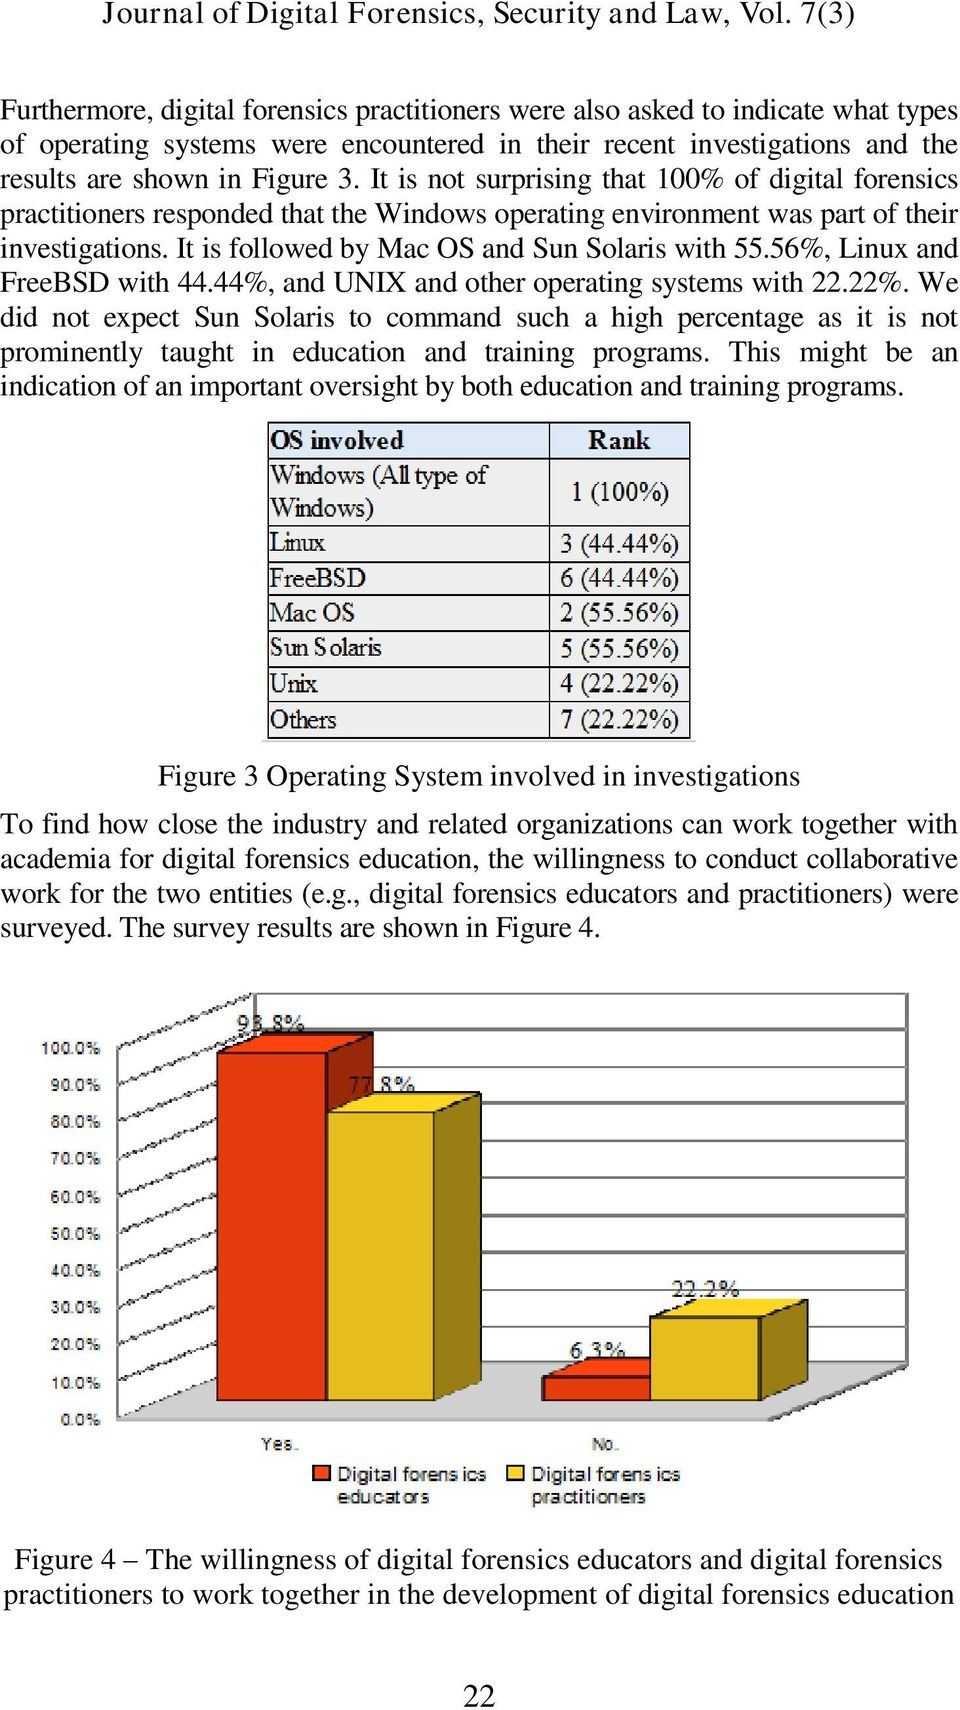 56%, Linux and FreeBSD with 44.44%, and UNIX and other operating systems with 22.22%.